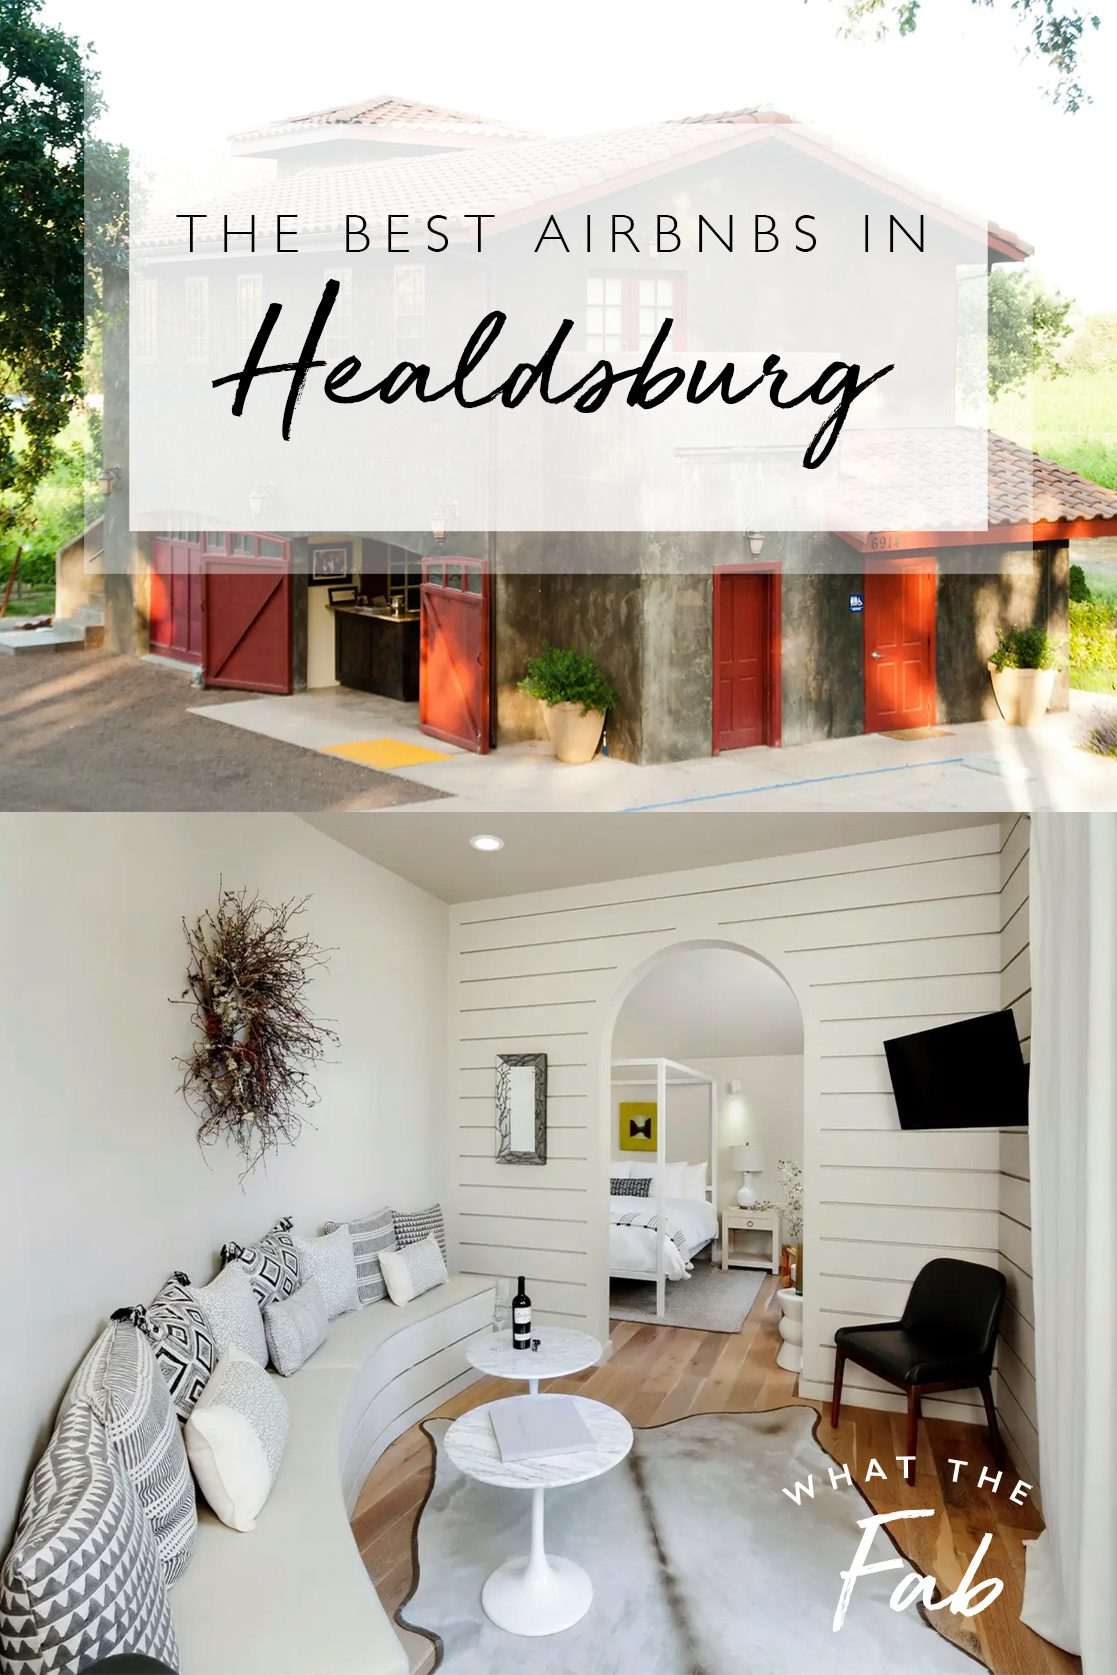 Airbnb Healdsburg: best of the best, by travel blogger What The Fab